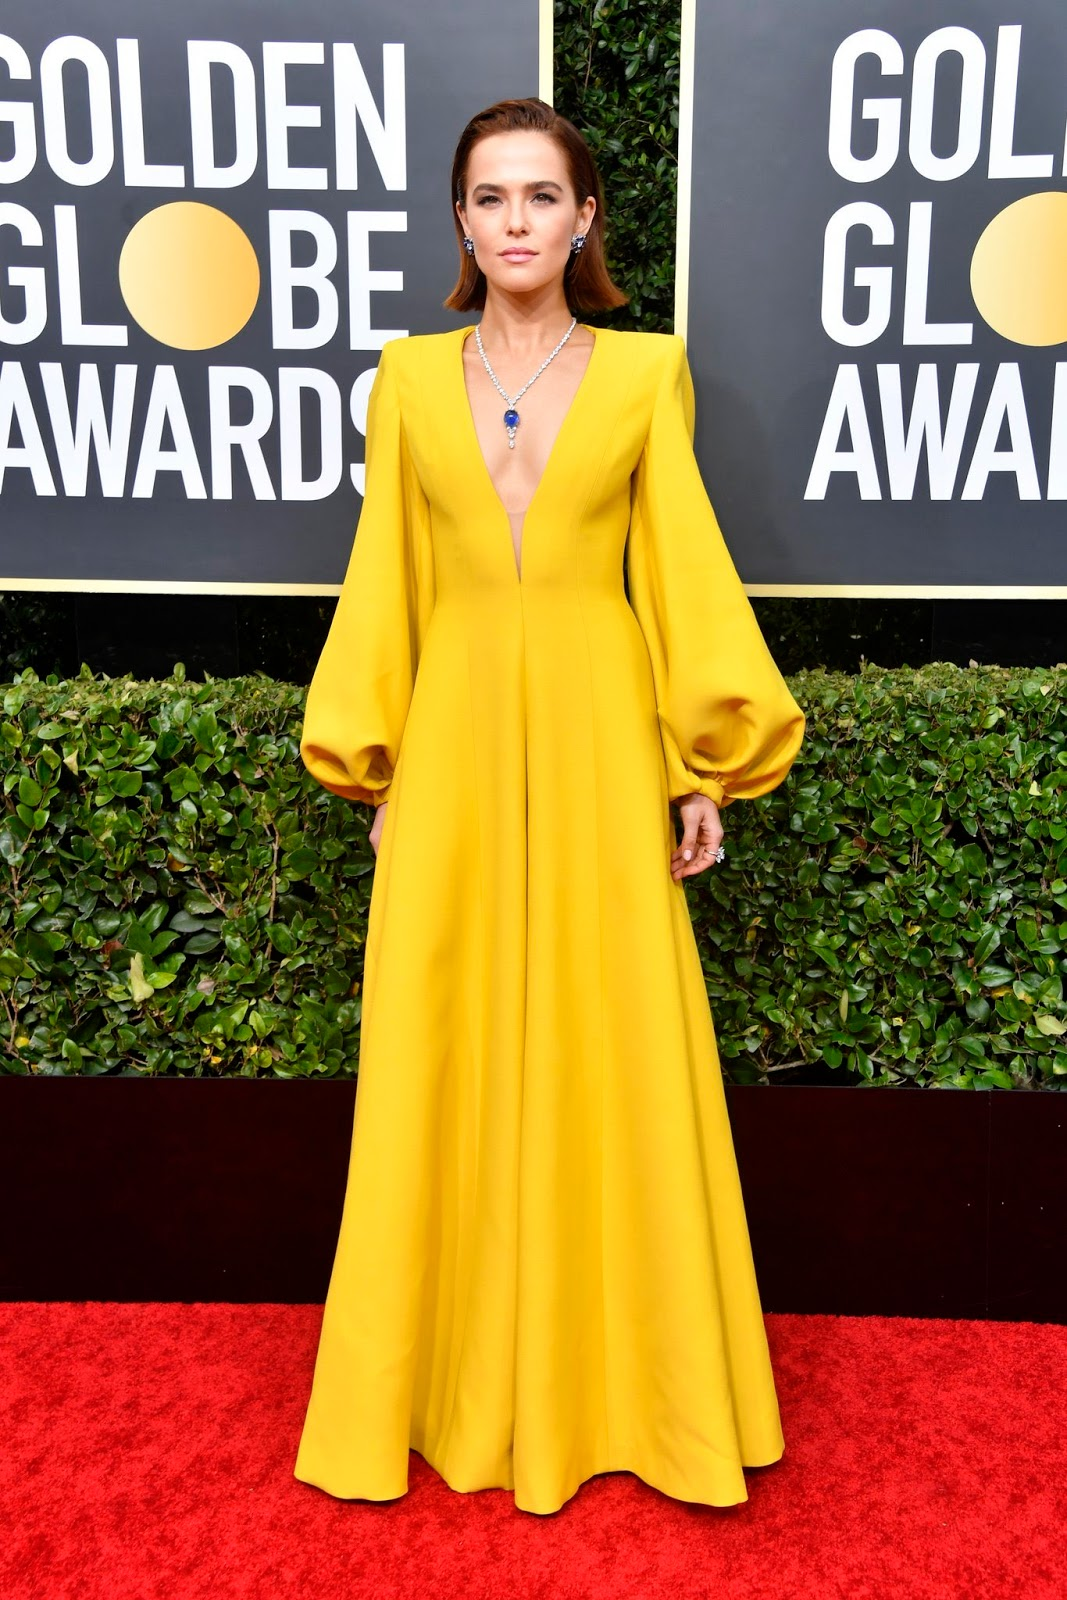 Zoey Deutch makes a bright statement in Fendi Couture at the 2020 Golden Globe Awards